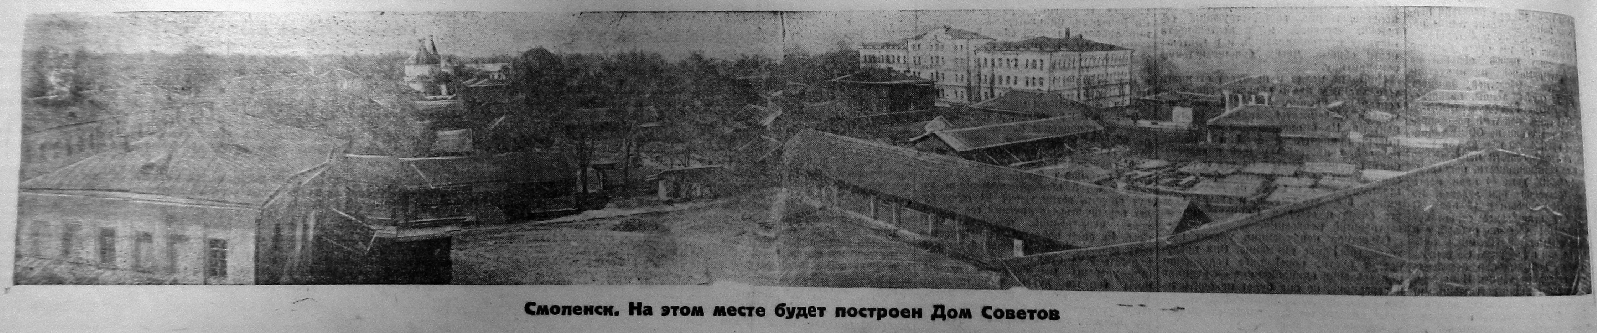 panorama_before-soviets-house_1930